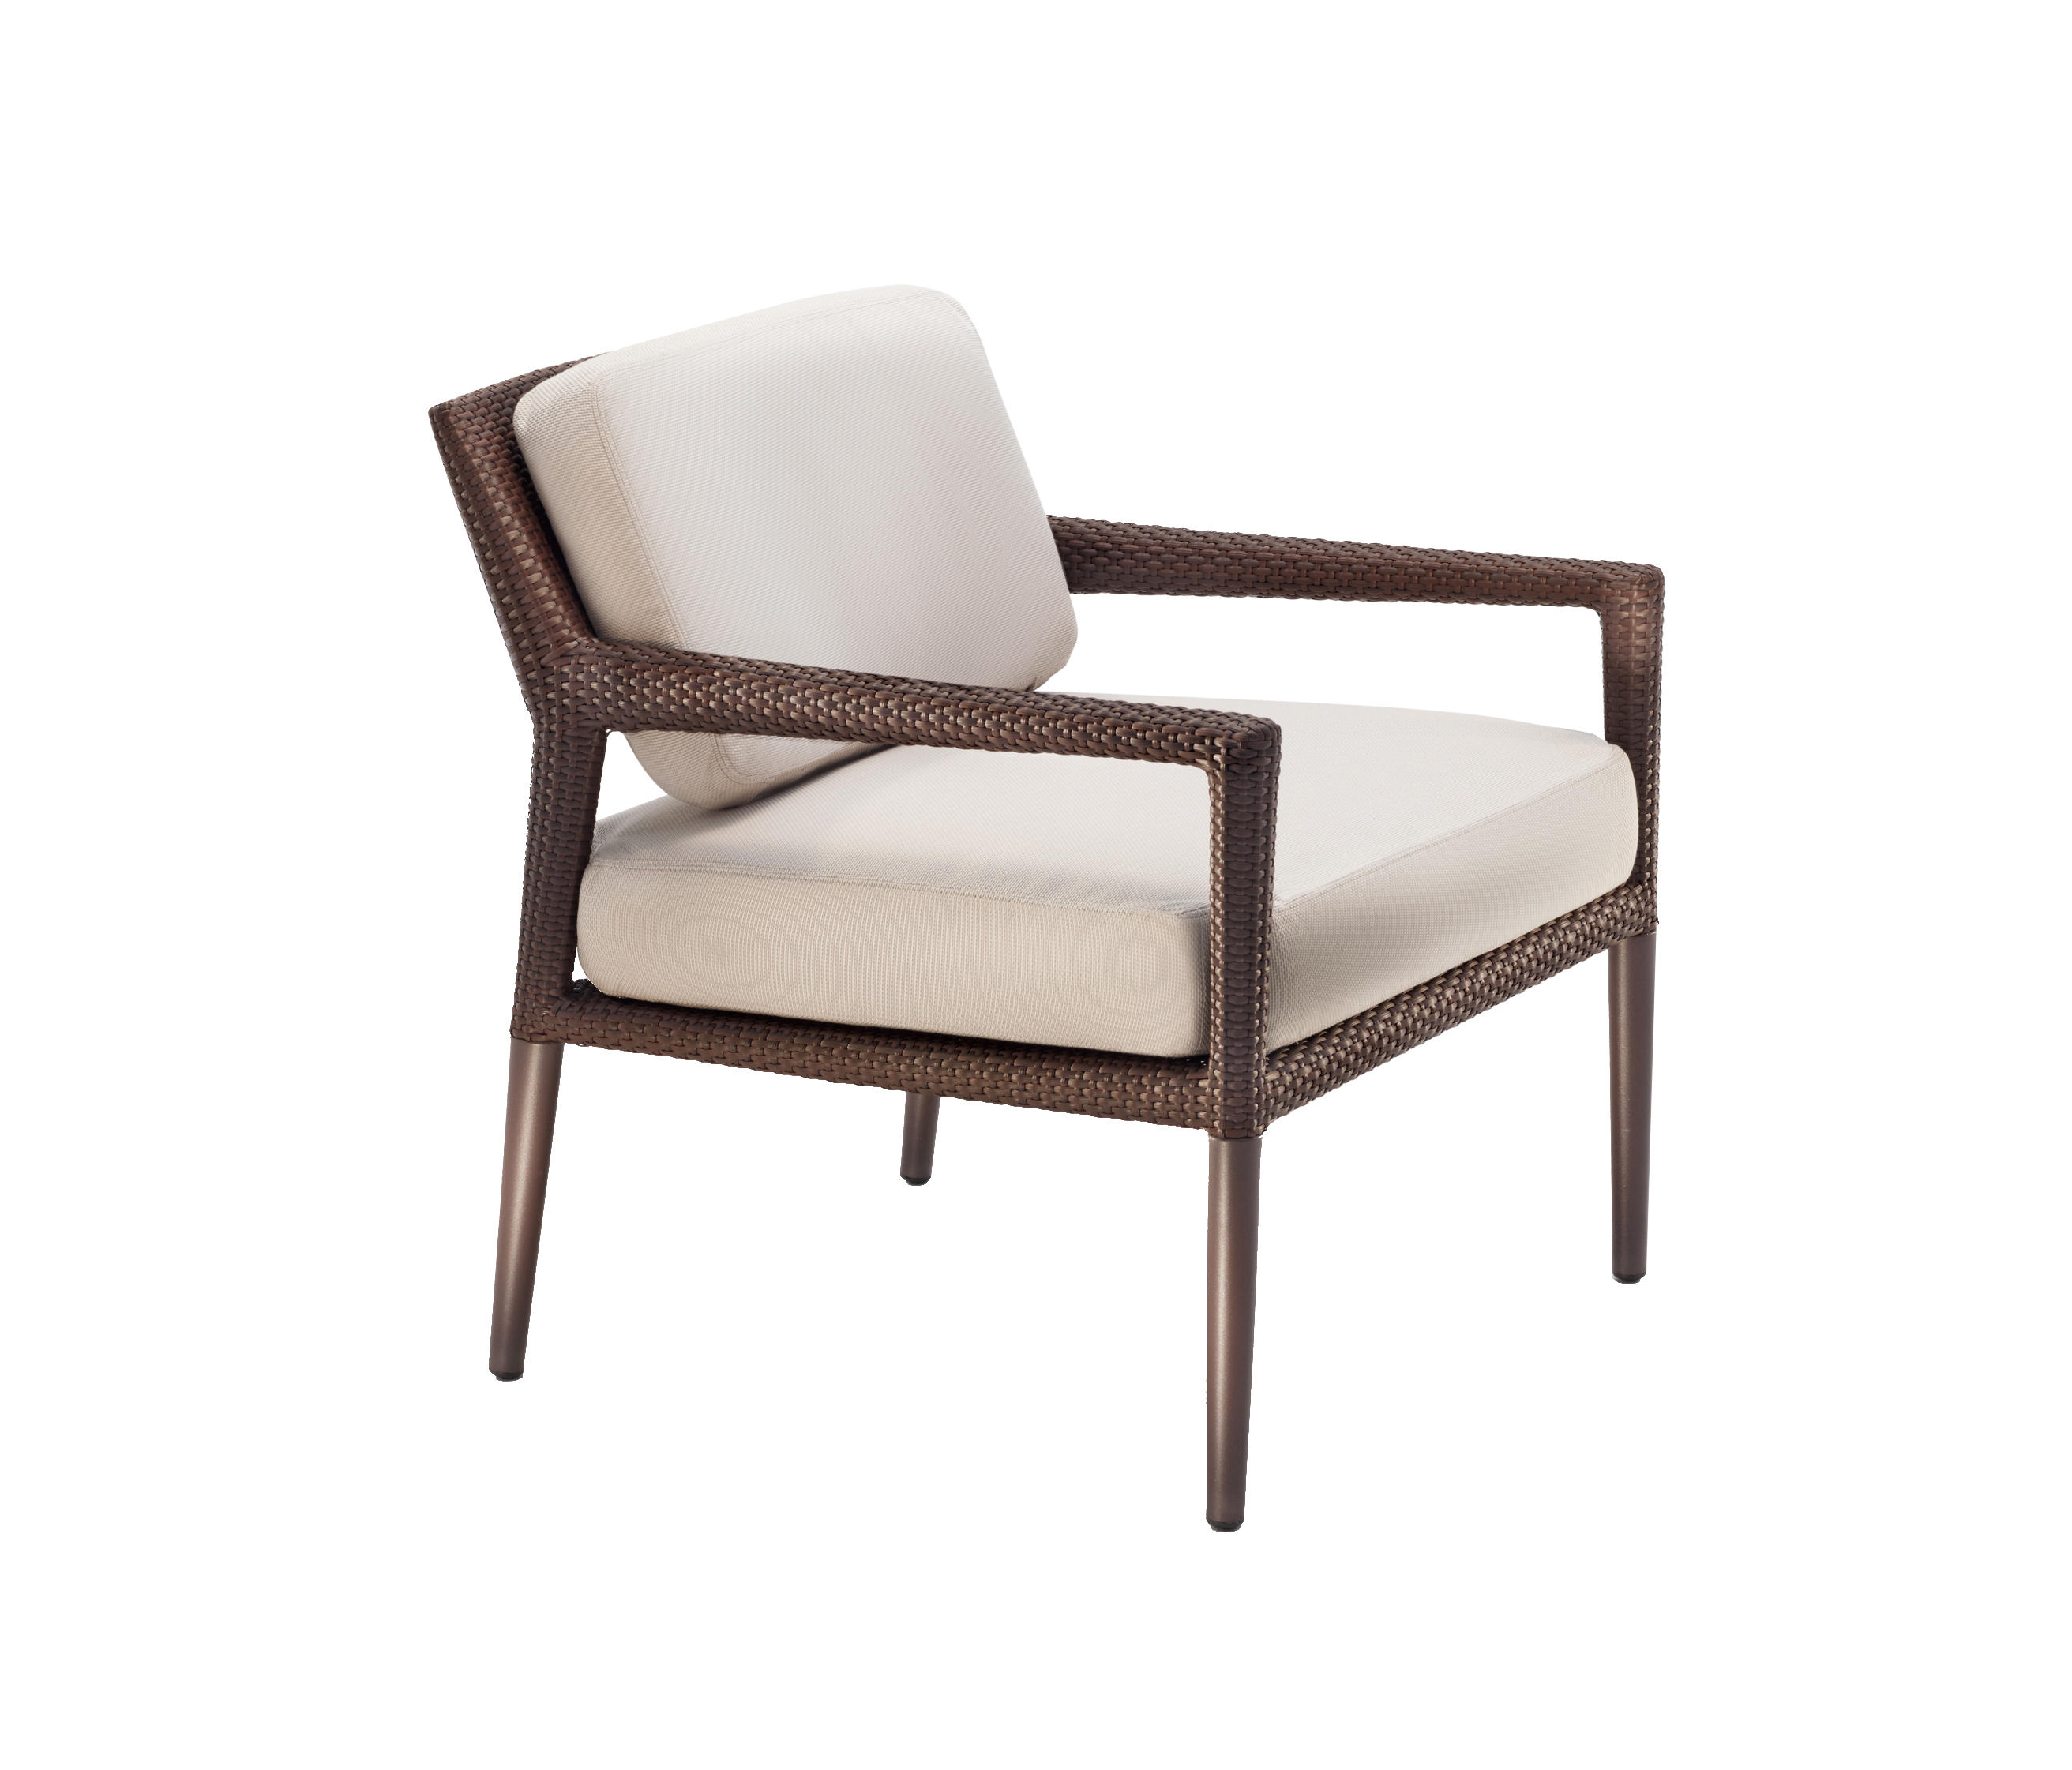 Tribeca Lounge Chair Armchairs From Dedon Architonic